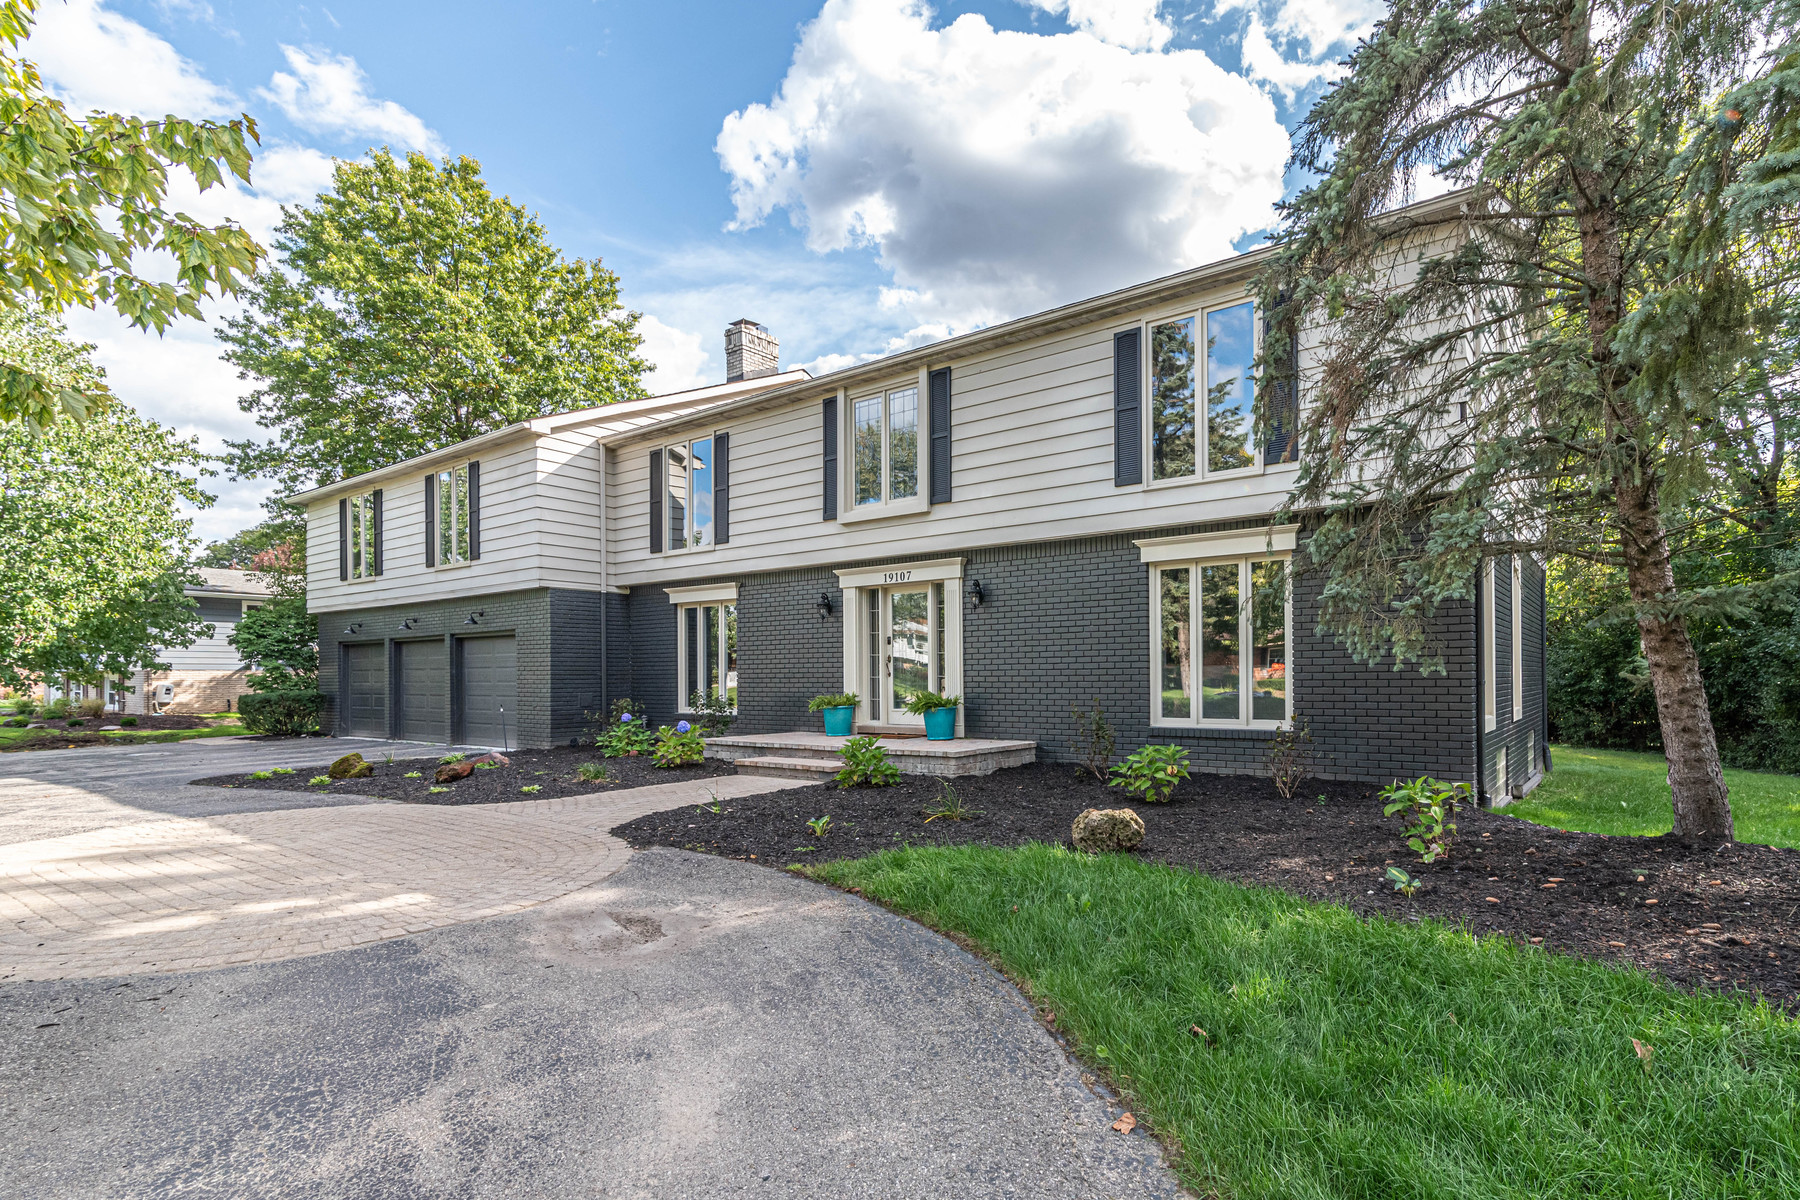 Single Family Homes for Active at Beverly Hills Village 19107 Chelton Drive Franklin, Michigan 48025 United States